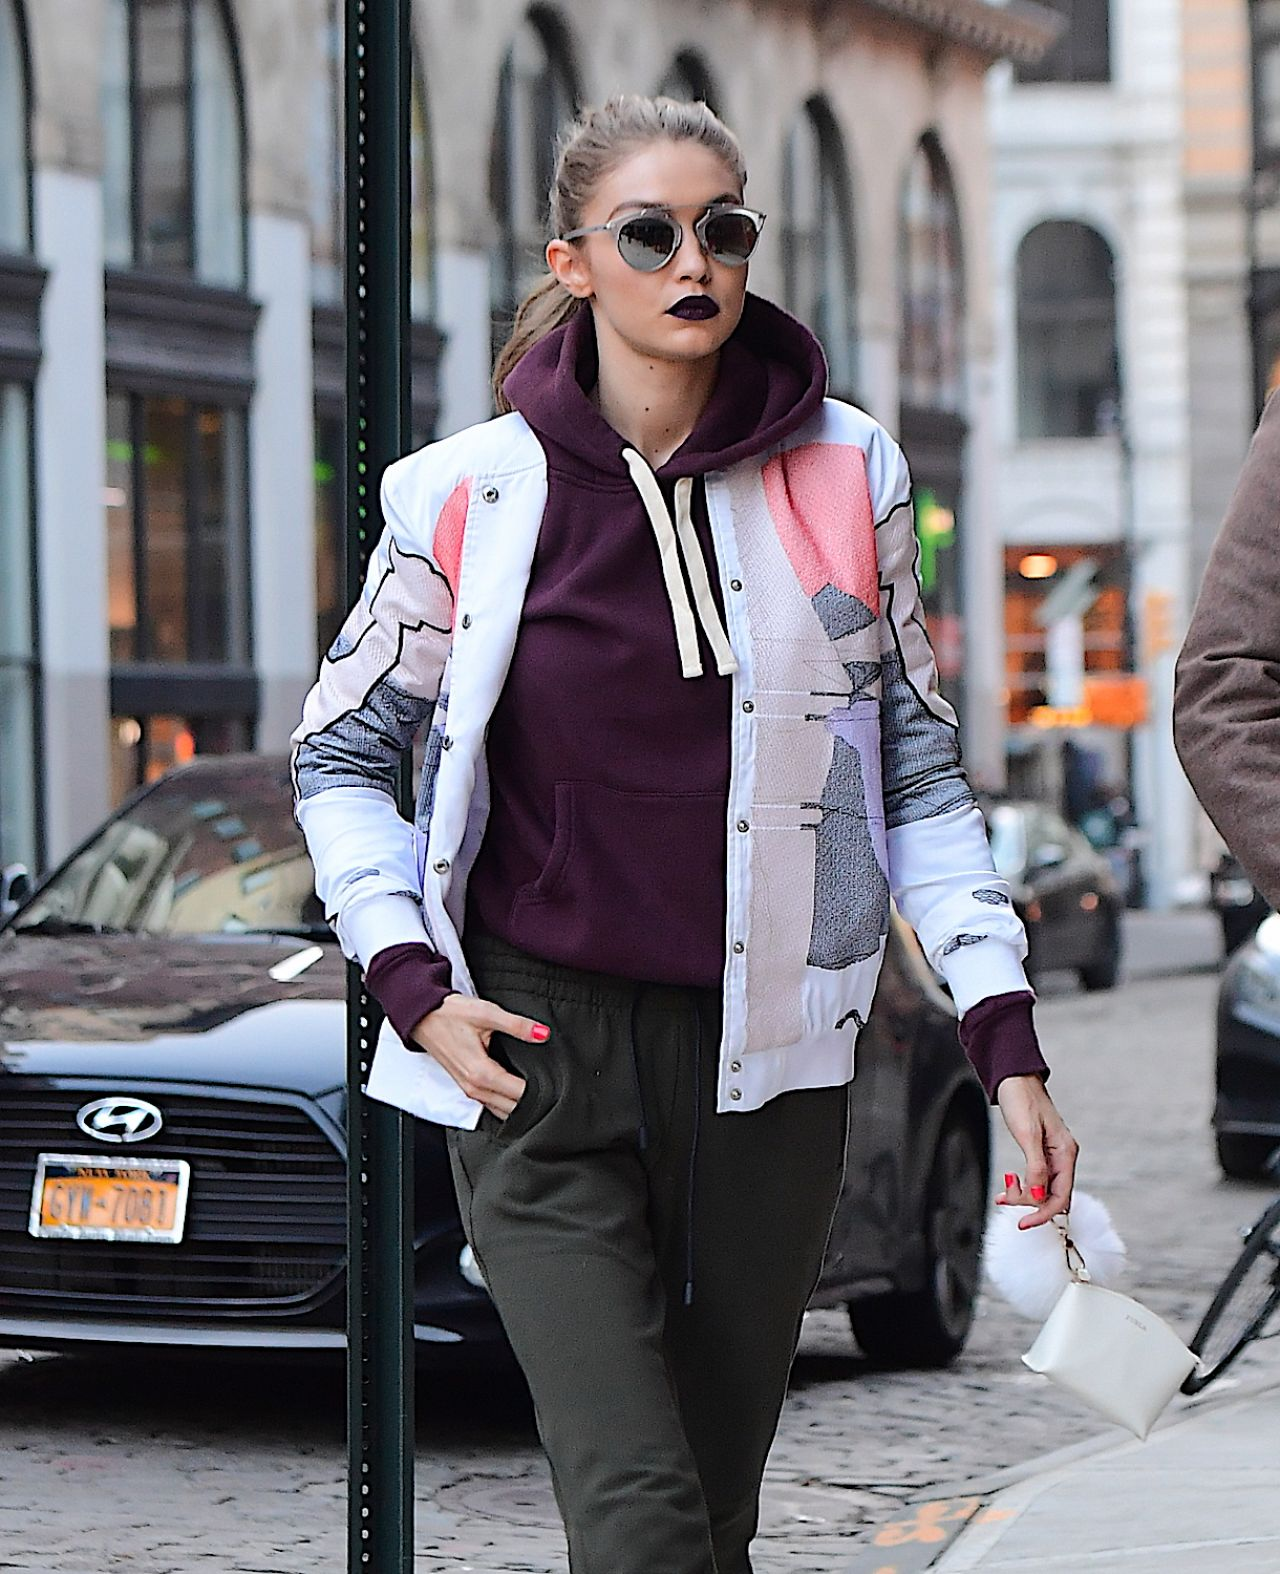 Gigi hadid arriving home in nyc 3 29 2017 for Style at home august 2017